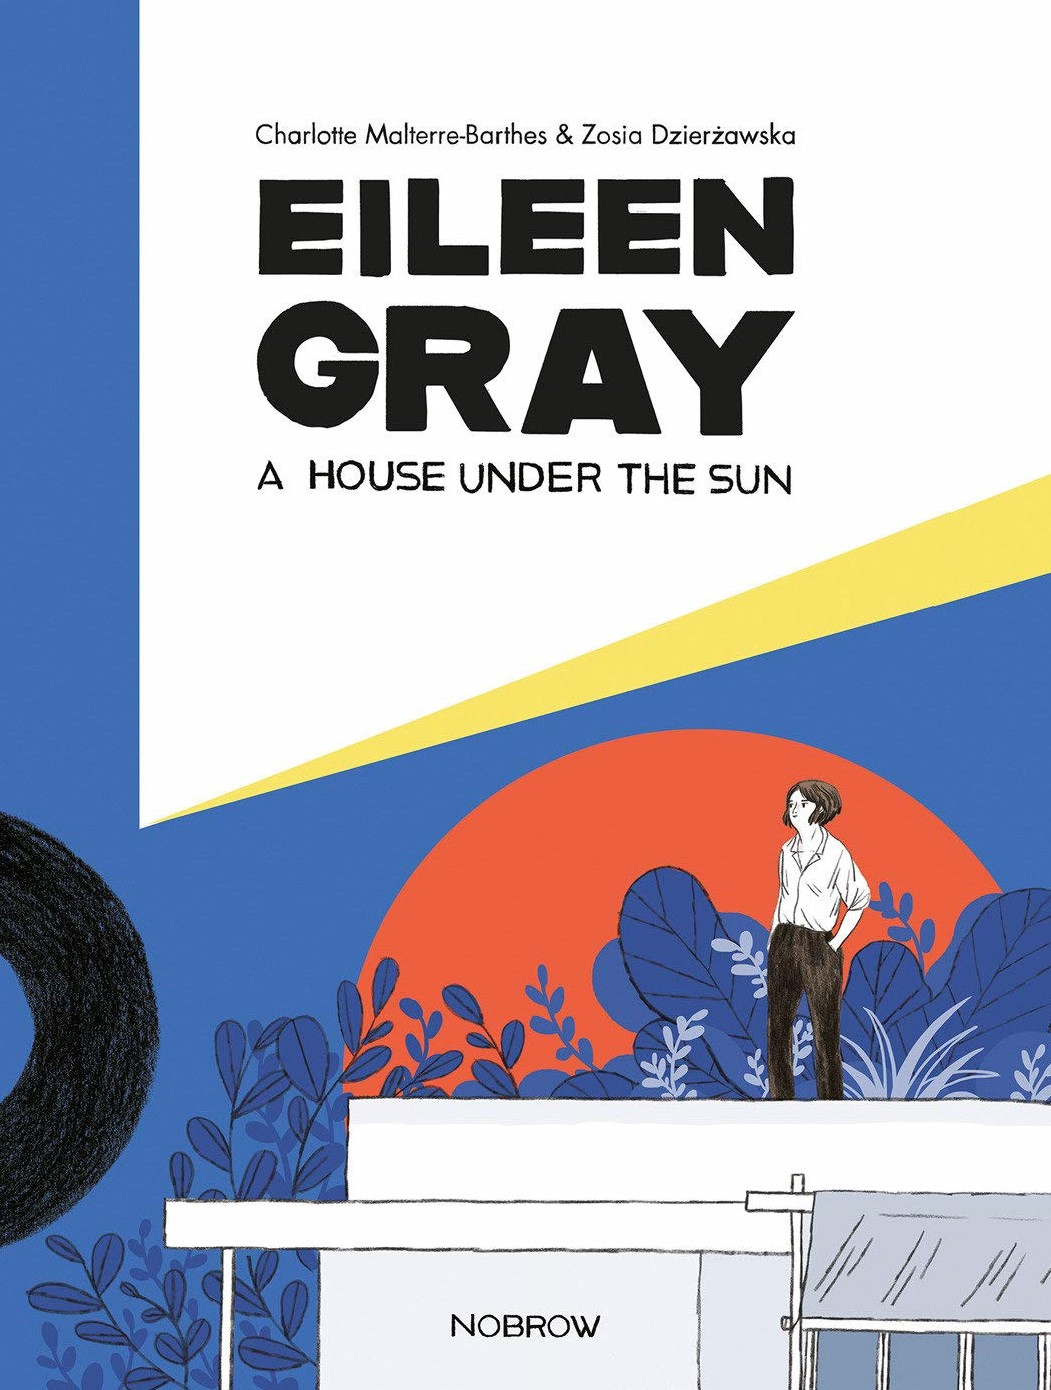 'Eileen Gray: A House Under The Sun' by Charlotte Malterre-Barthes